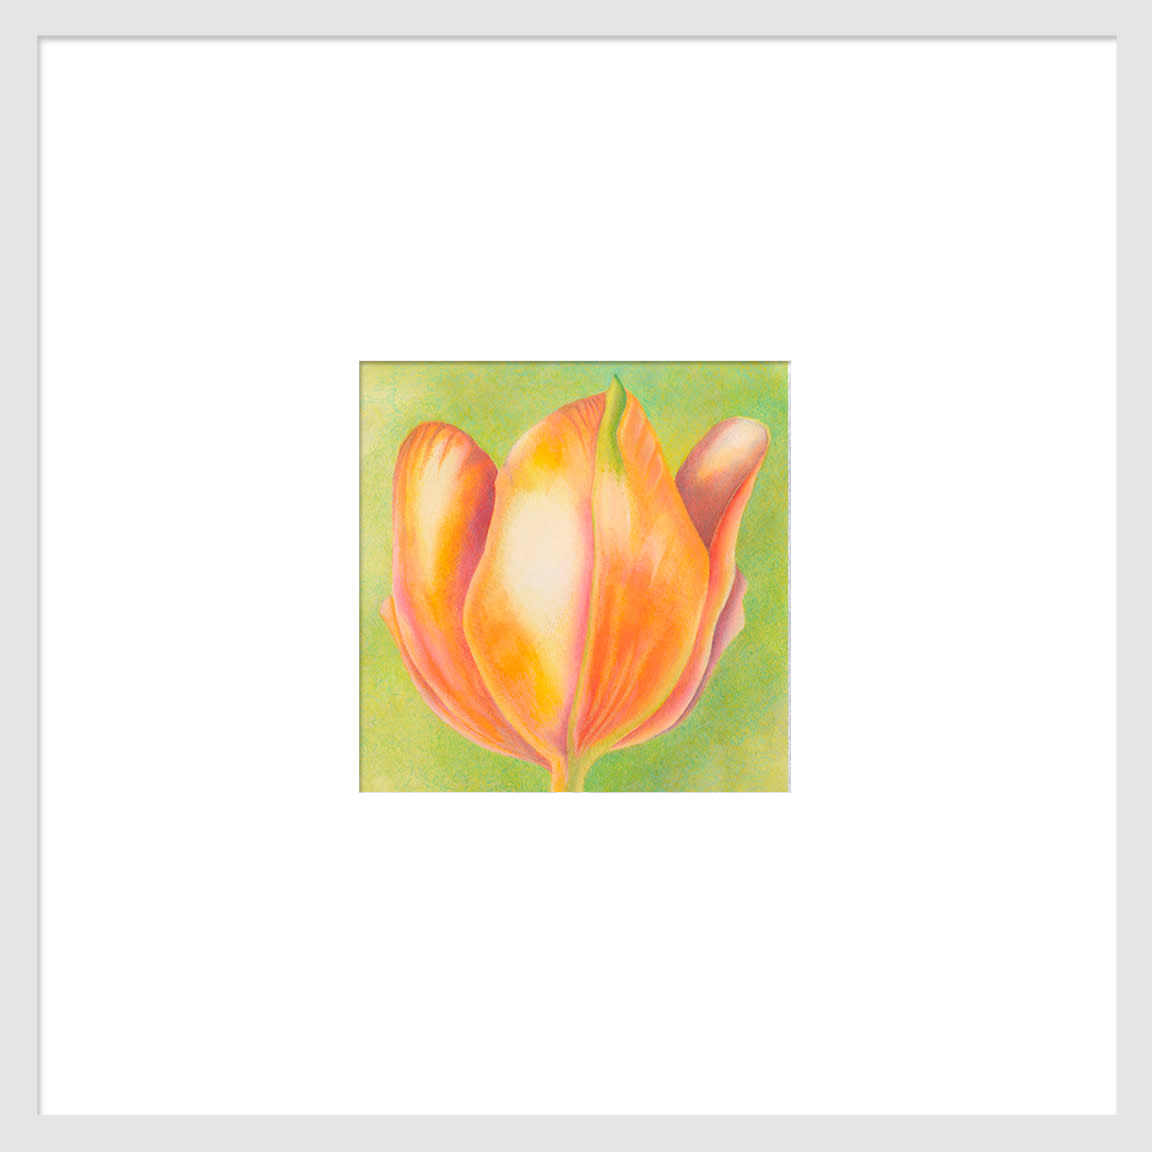 100701 orange tulip series  1 6x6 matted to 16x16x72 hzdtd6